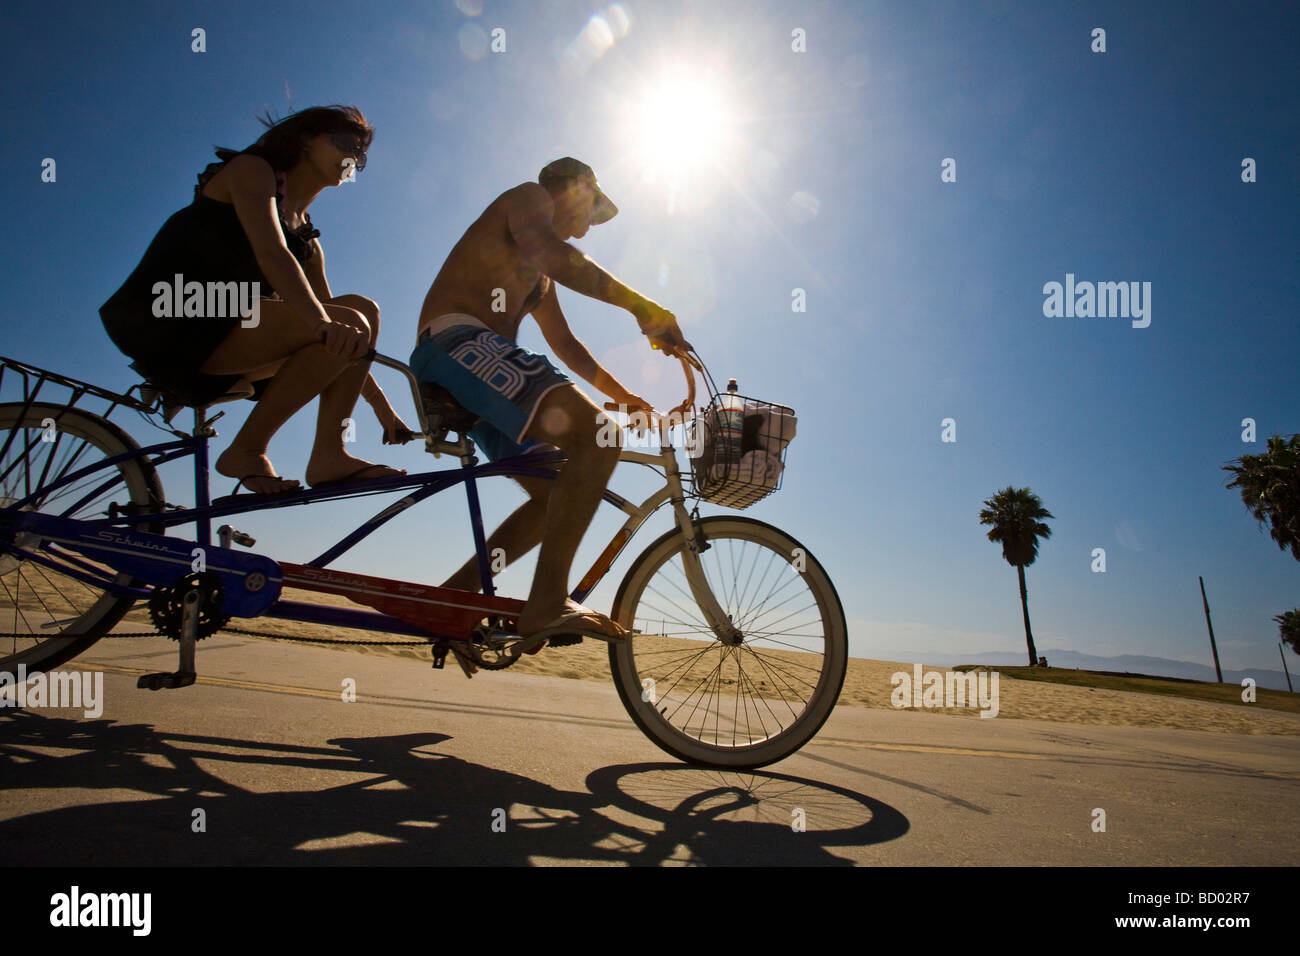 Tandem Bicycle riding Venice Beach Los Angeles County California United States of America - Stock Image